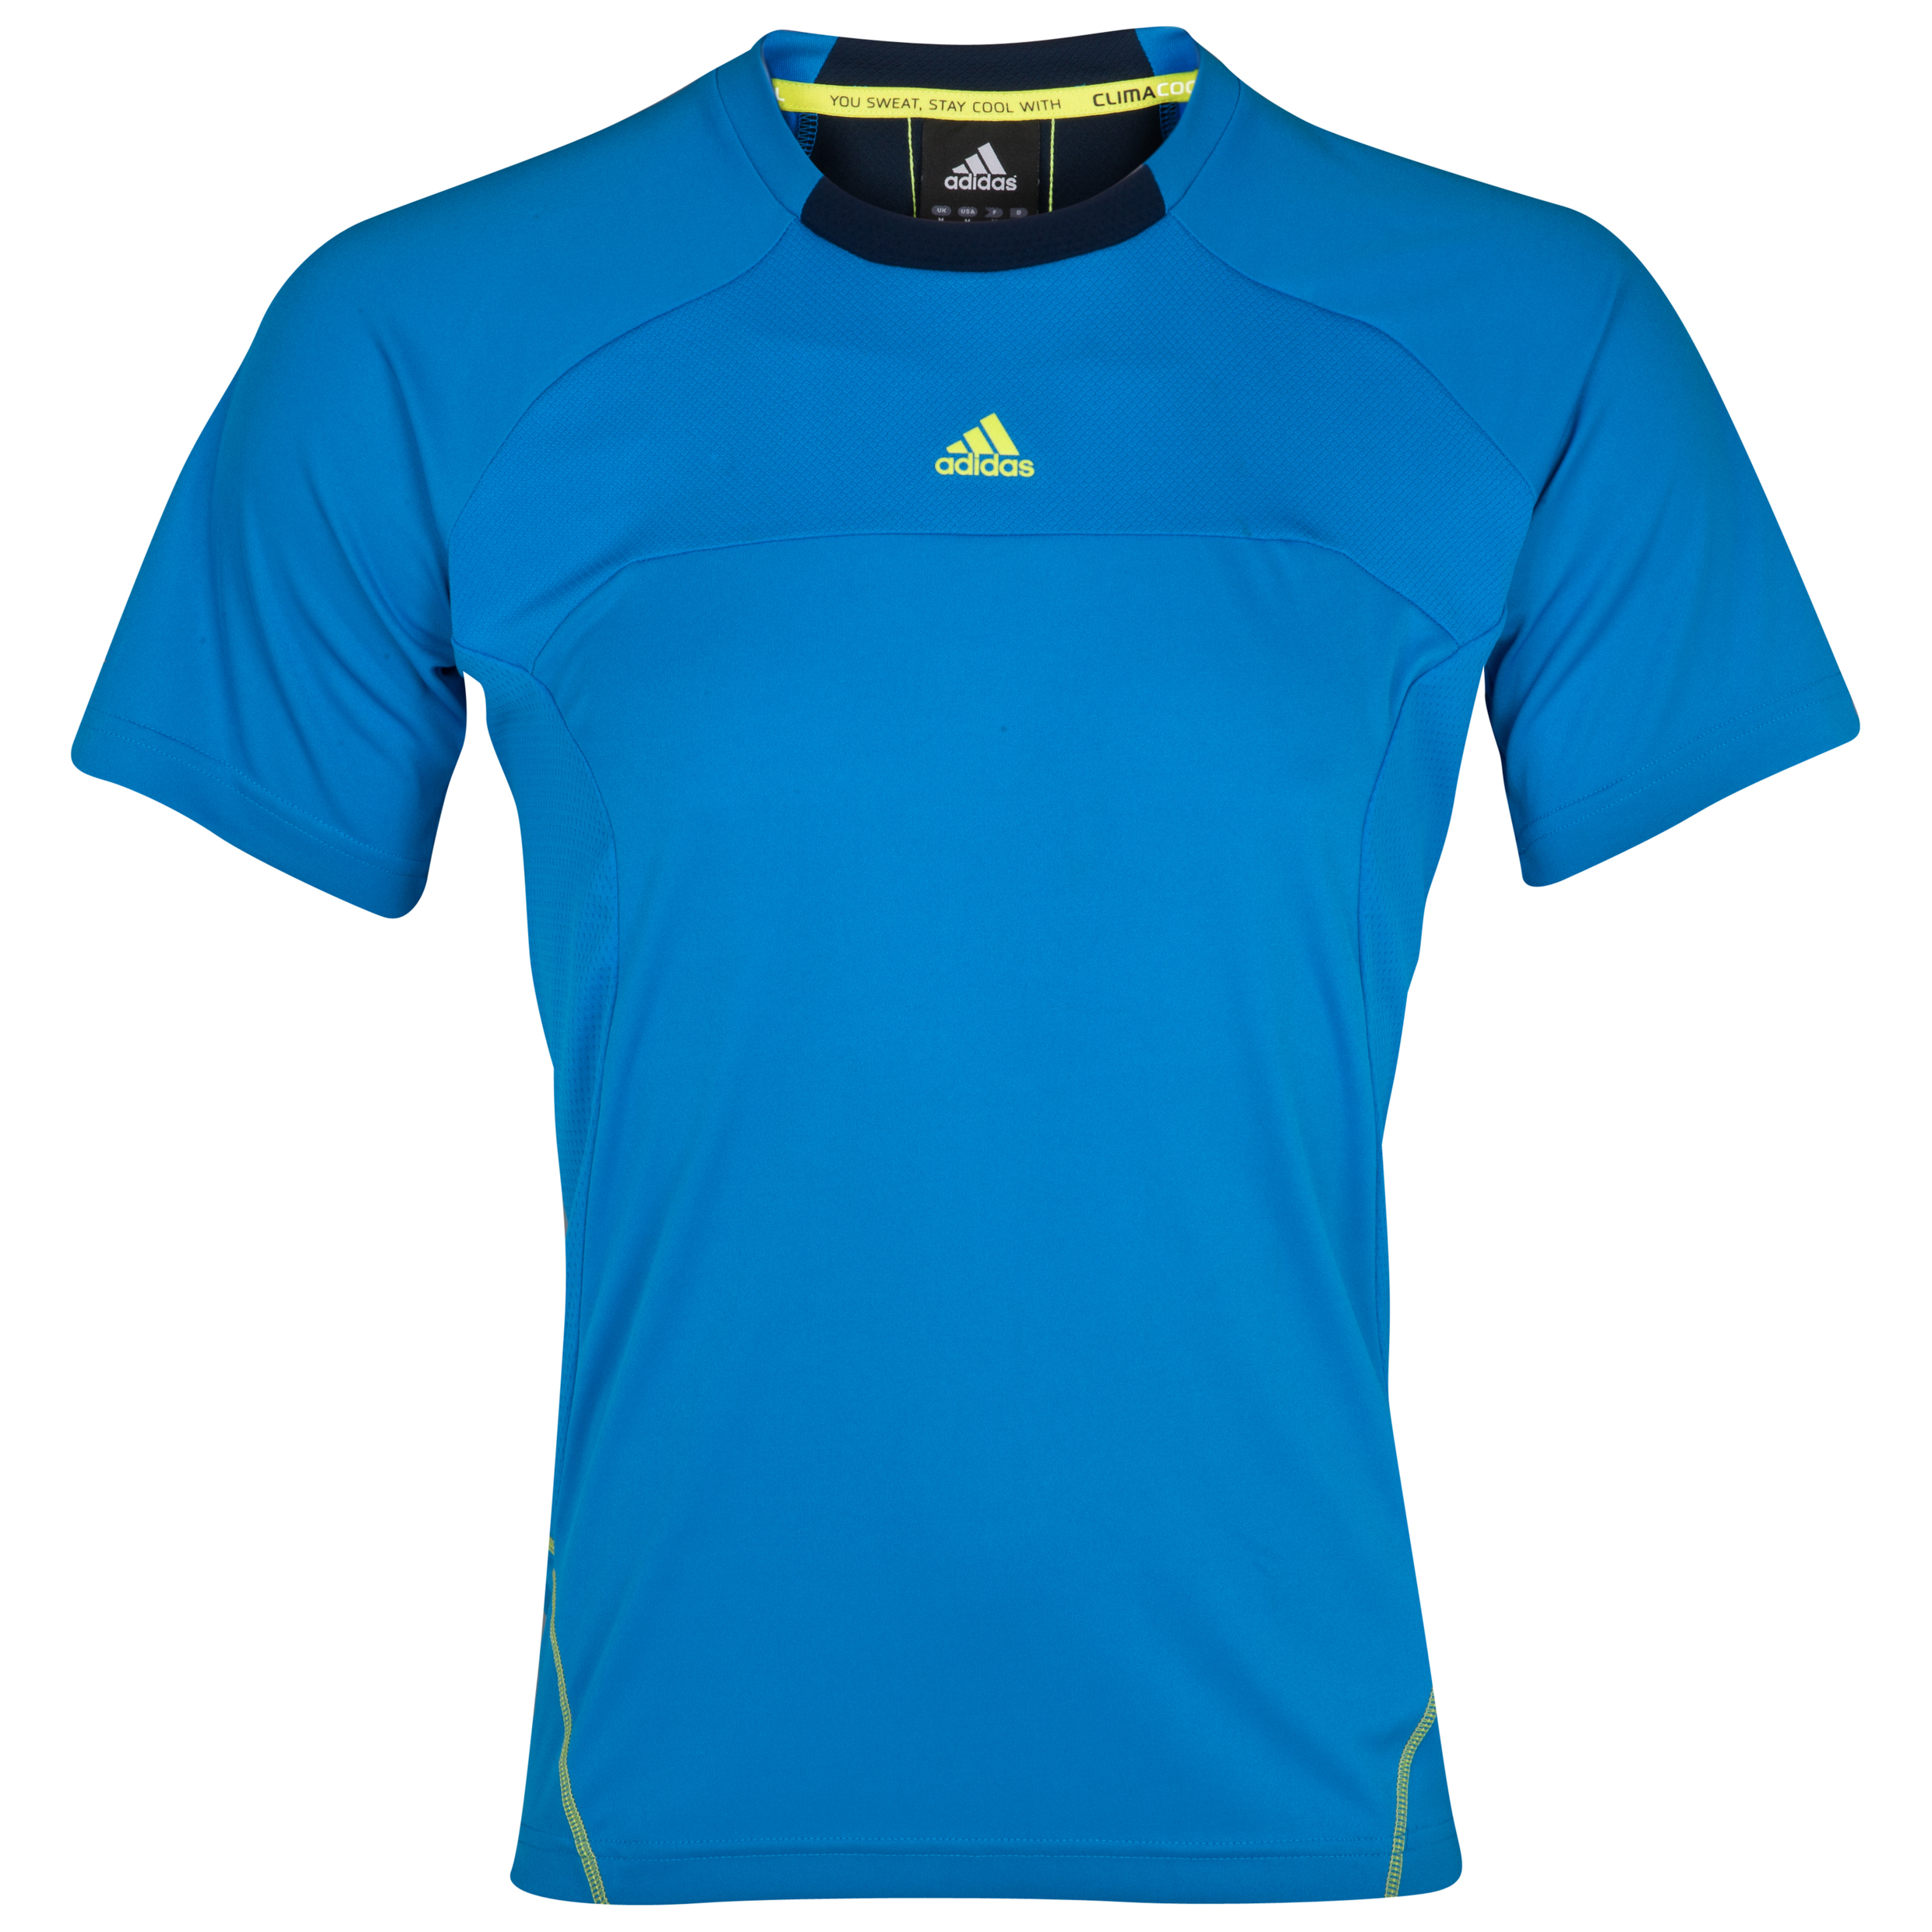 Adidas Clima365 Coolest Tee - Bright Blue